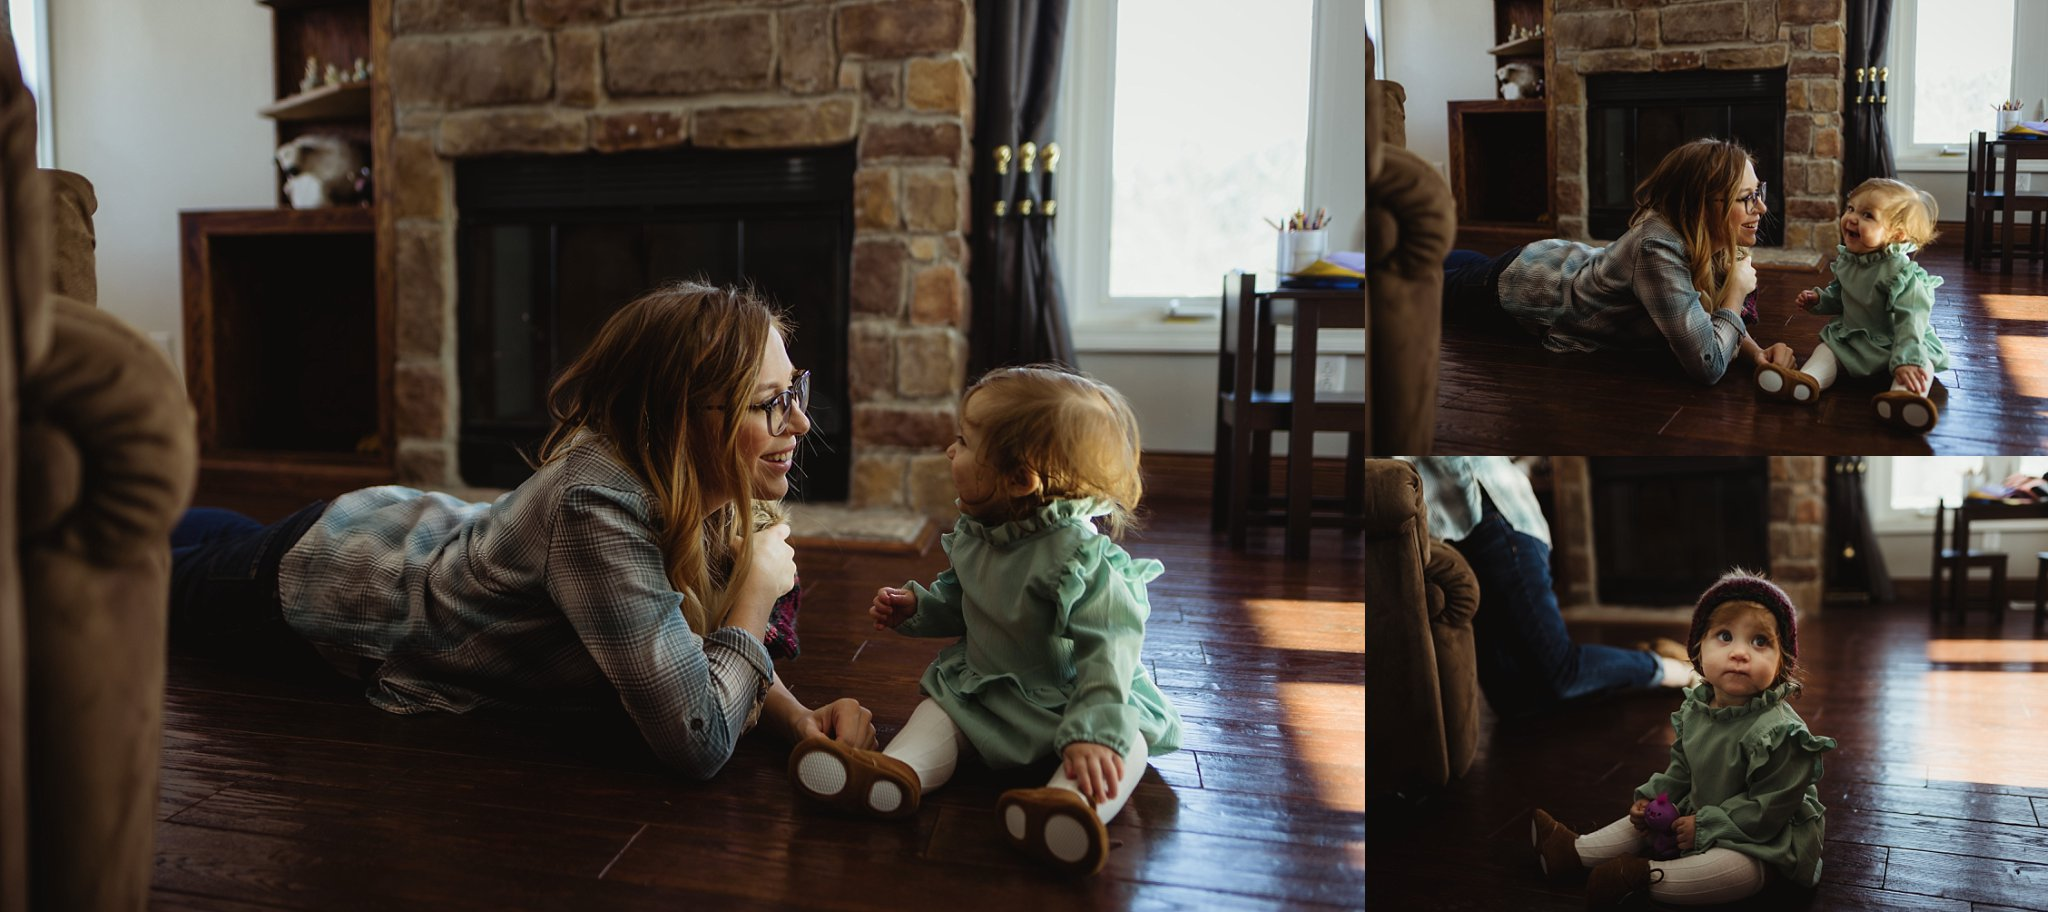 Mom sits with baby during family documentary session.